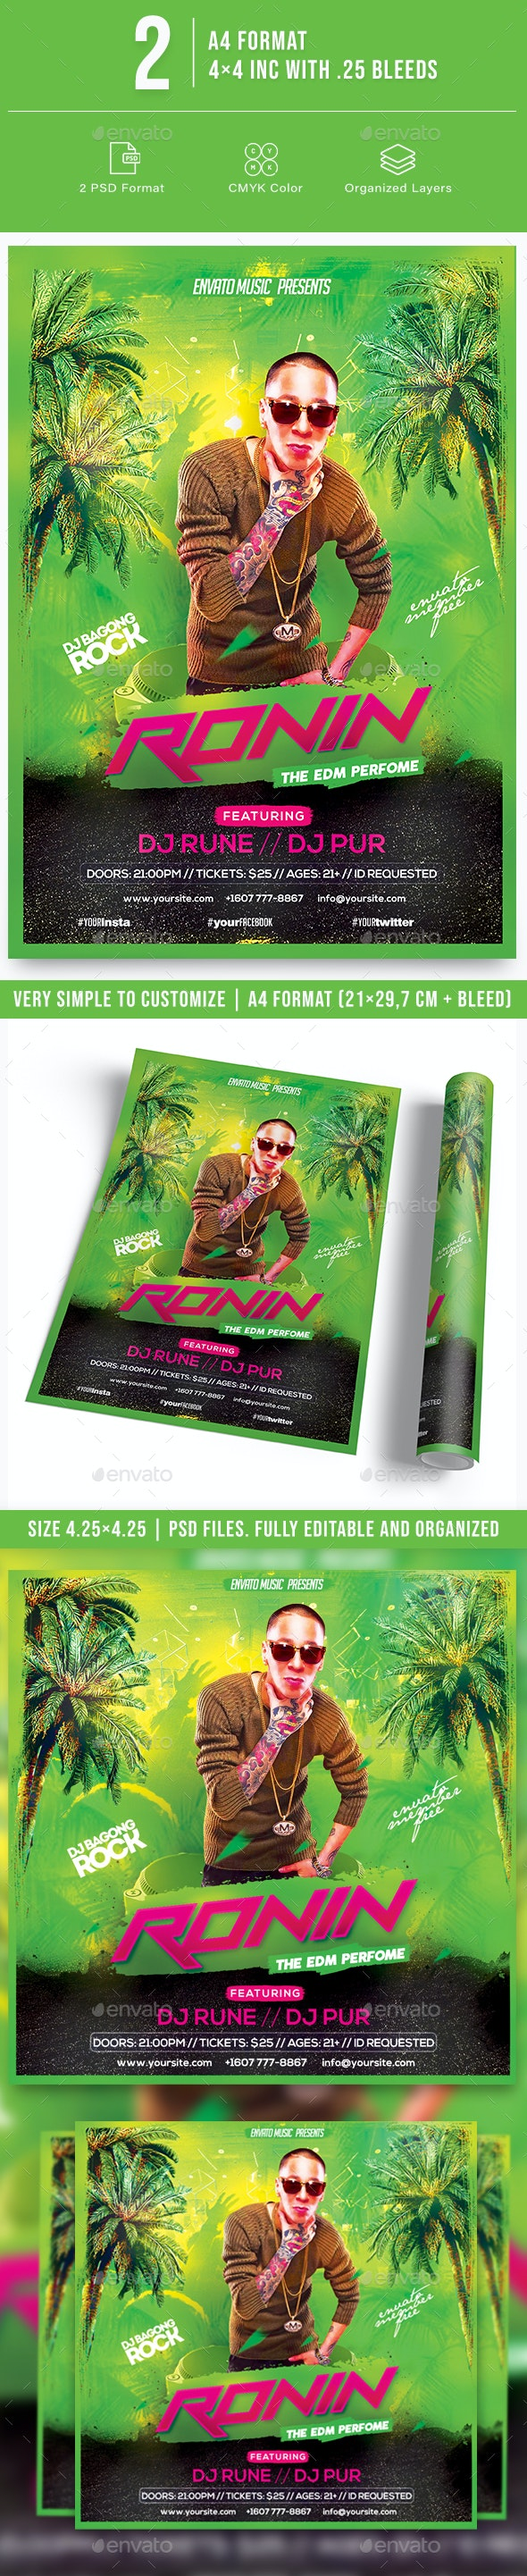 Ronin Night Party Flyer - Clubs & Parties Events